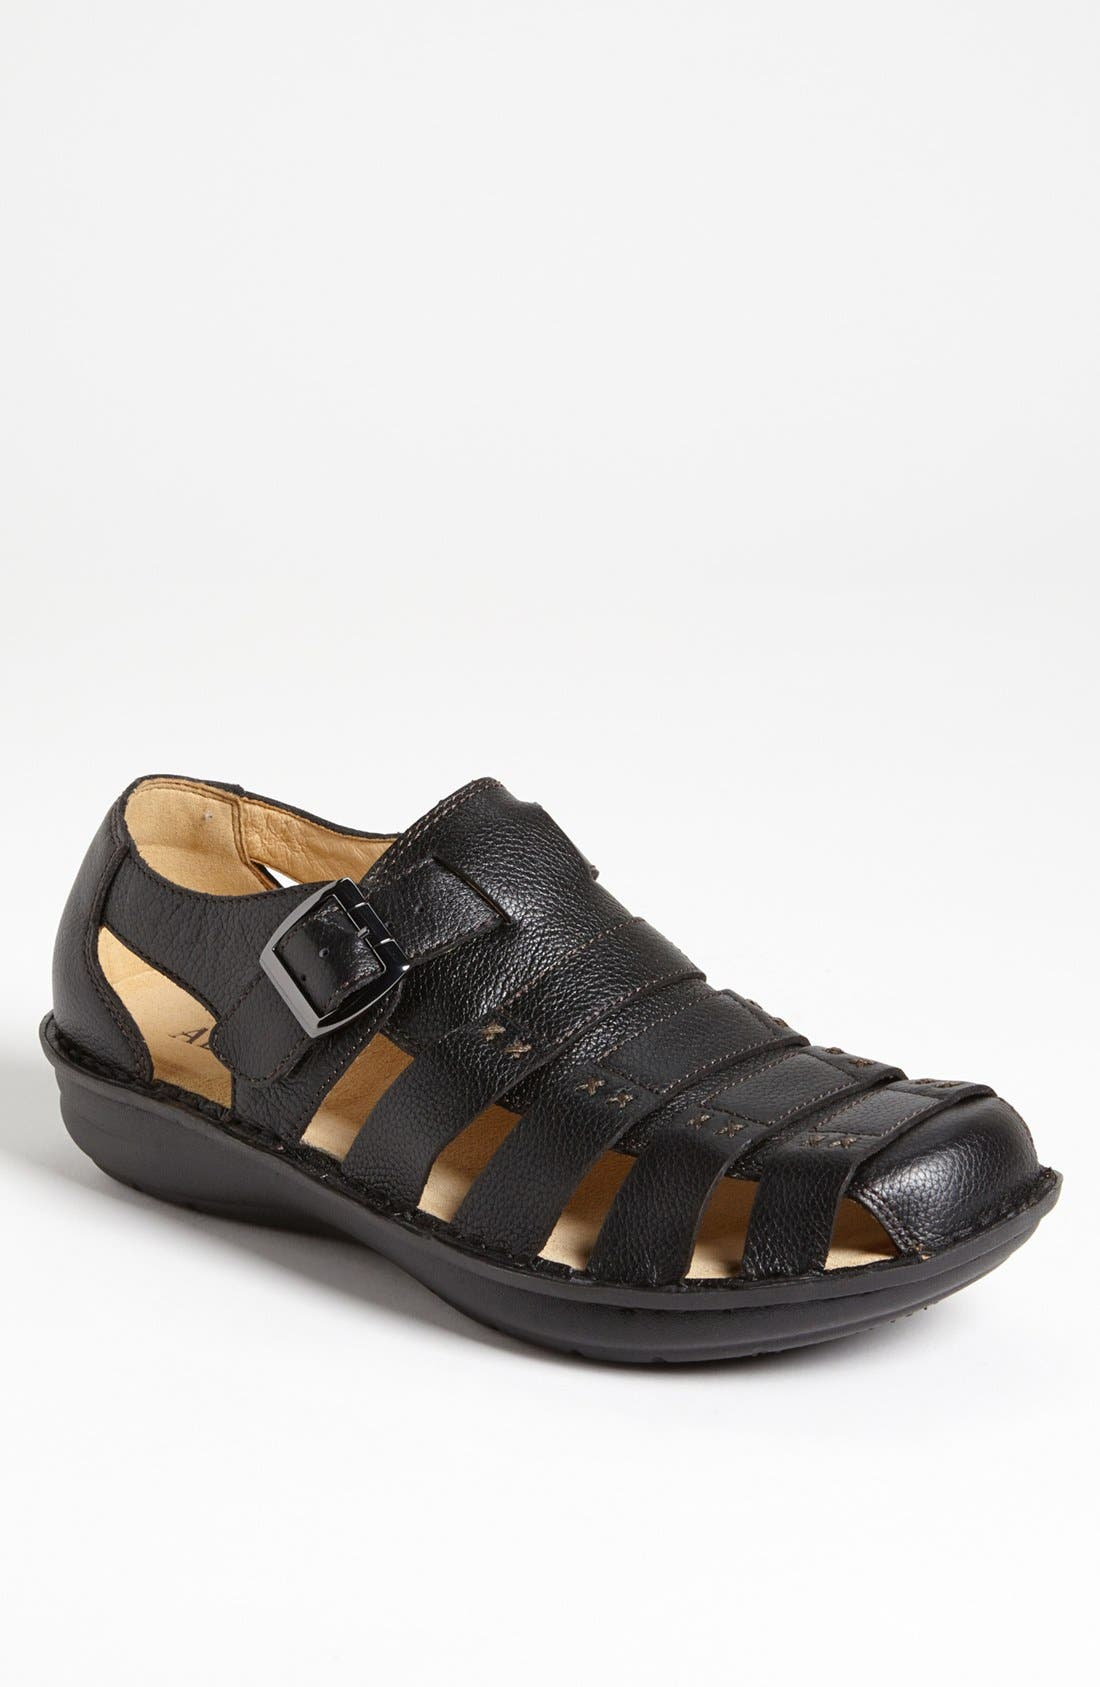 Alternate Image 1 Selected - Alegria 'Martinique' Sandal (Men)